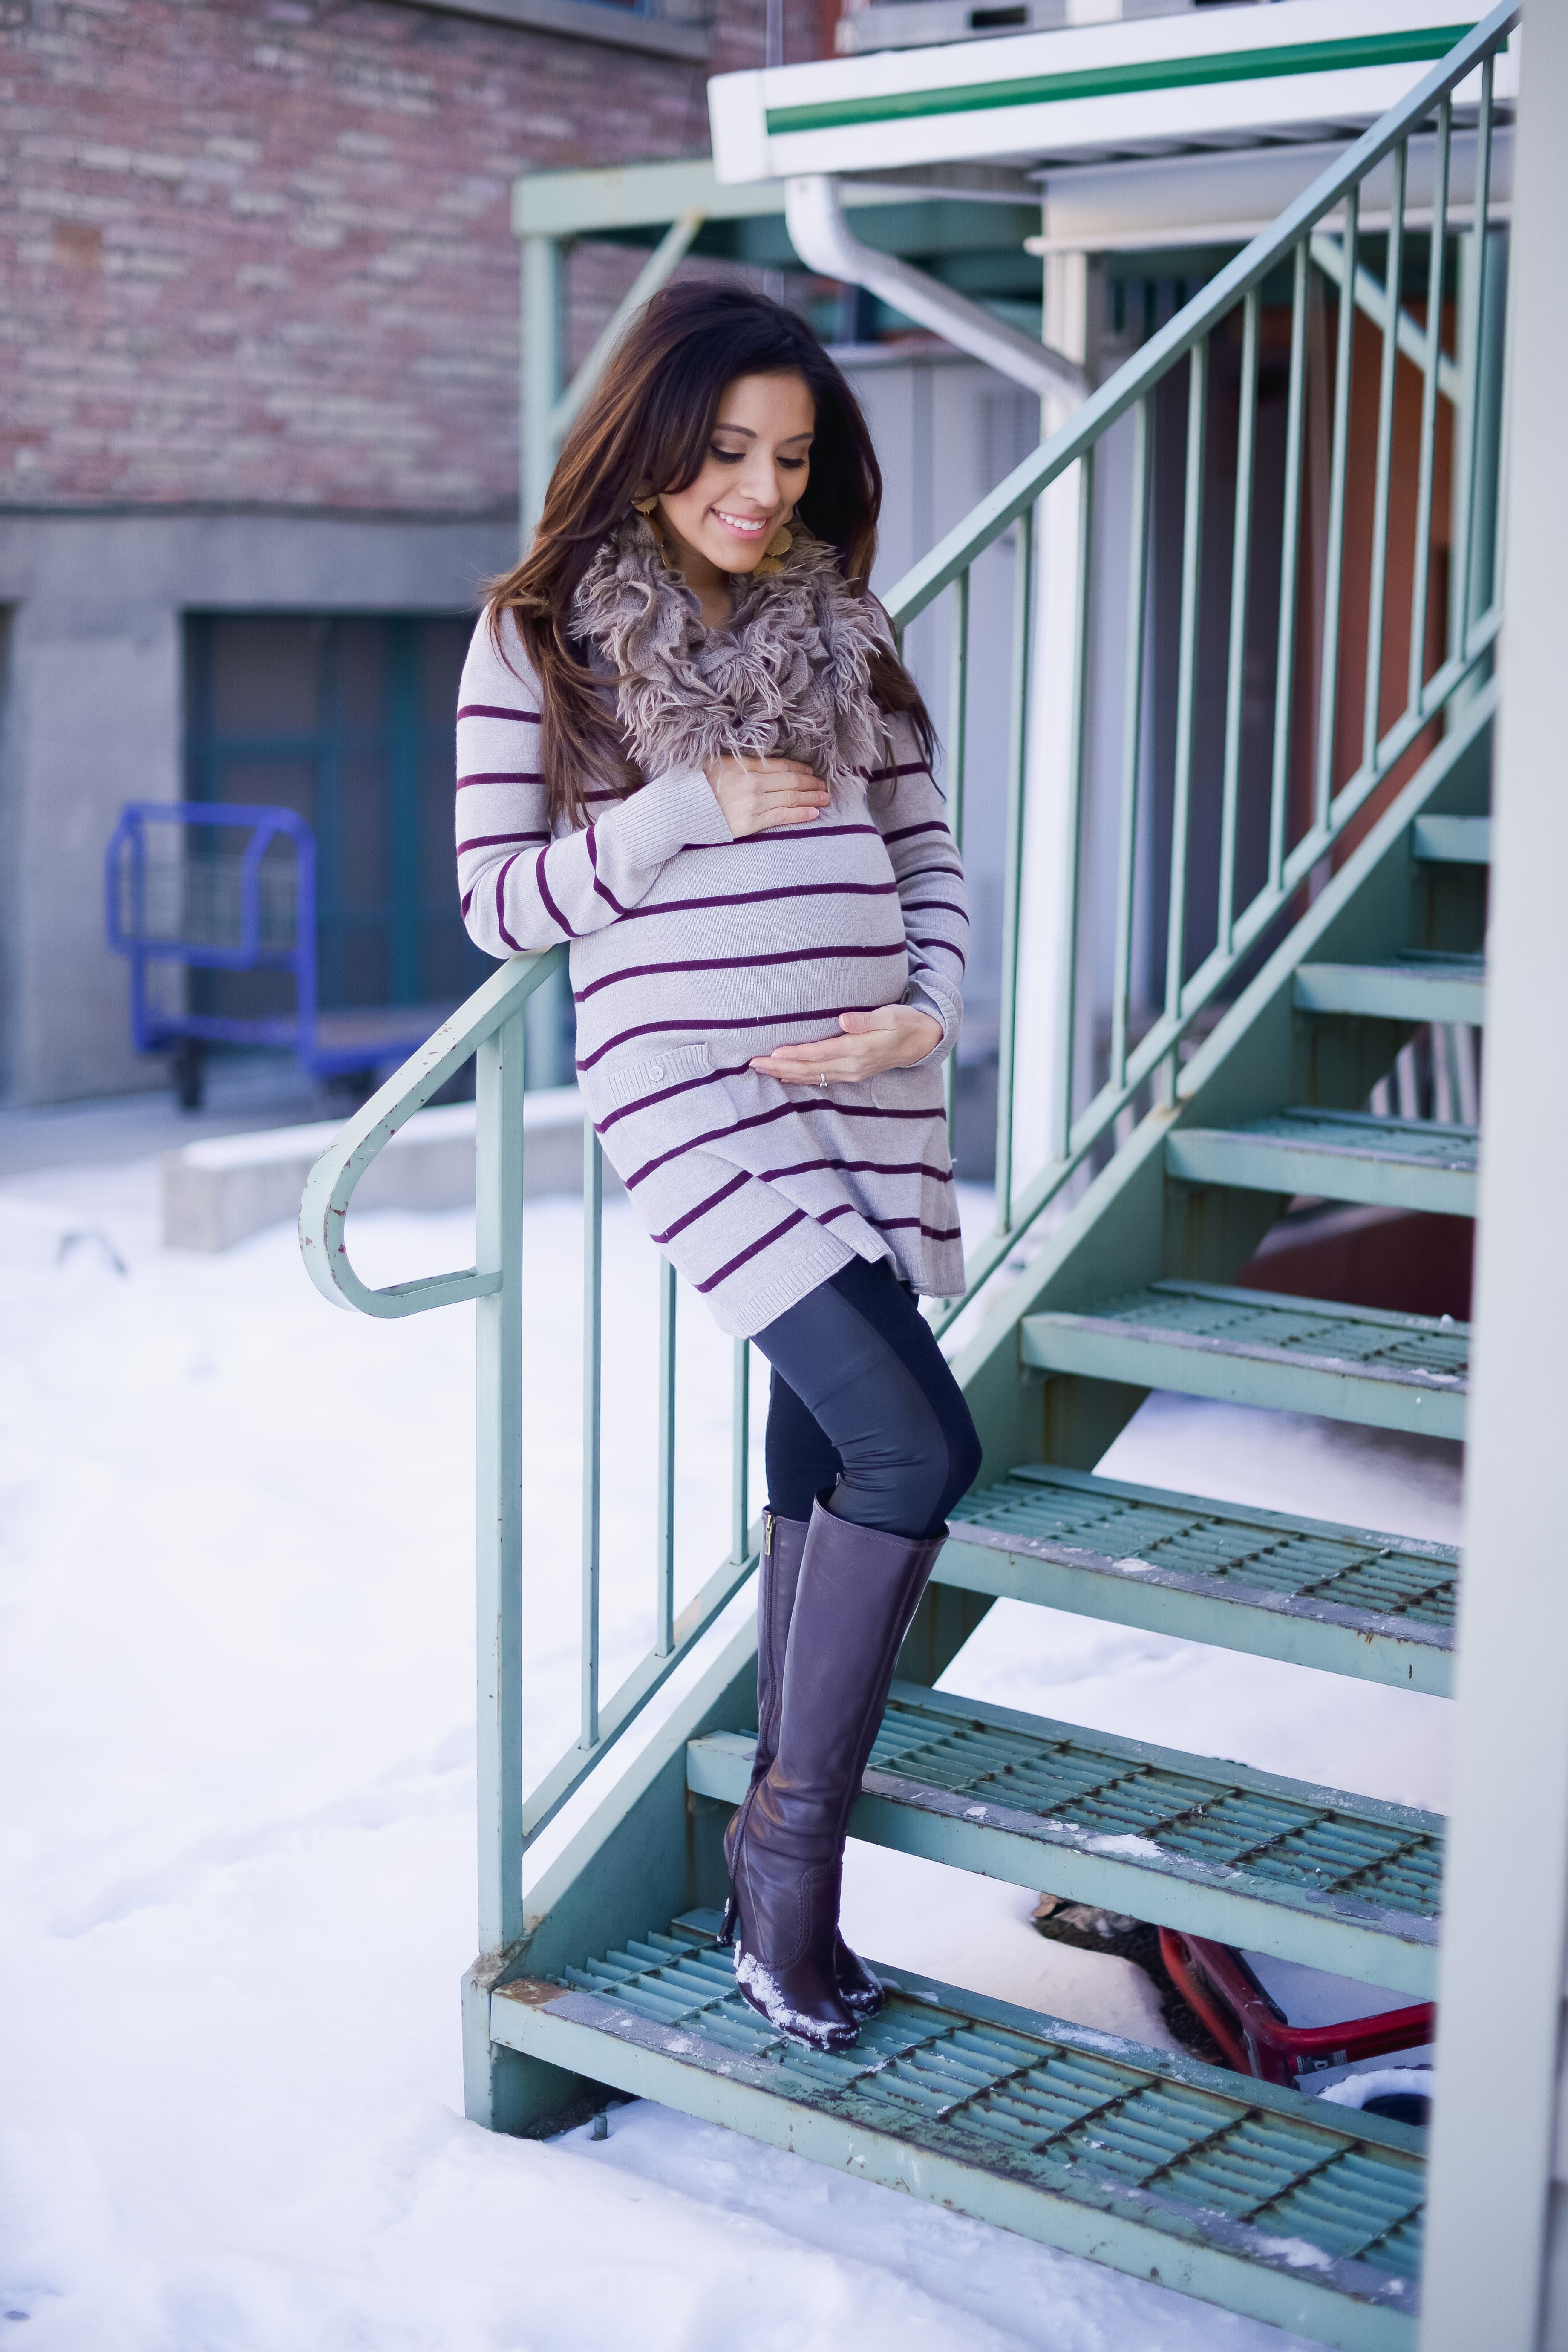 3f0d5dd82e1a0 42 Outfit Ideas for Pregnant During Winter That's will Make You Cozy  https://